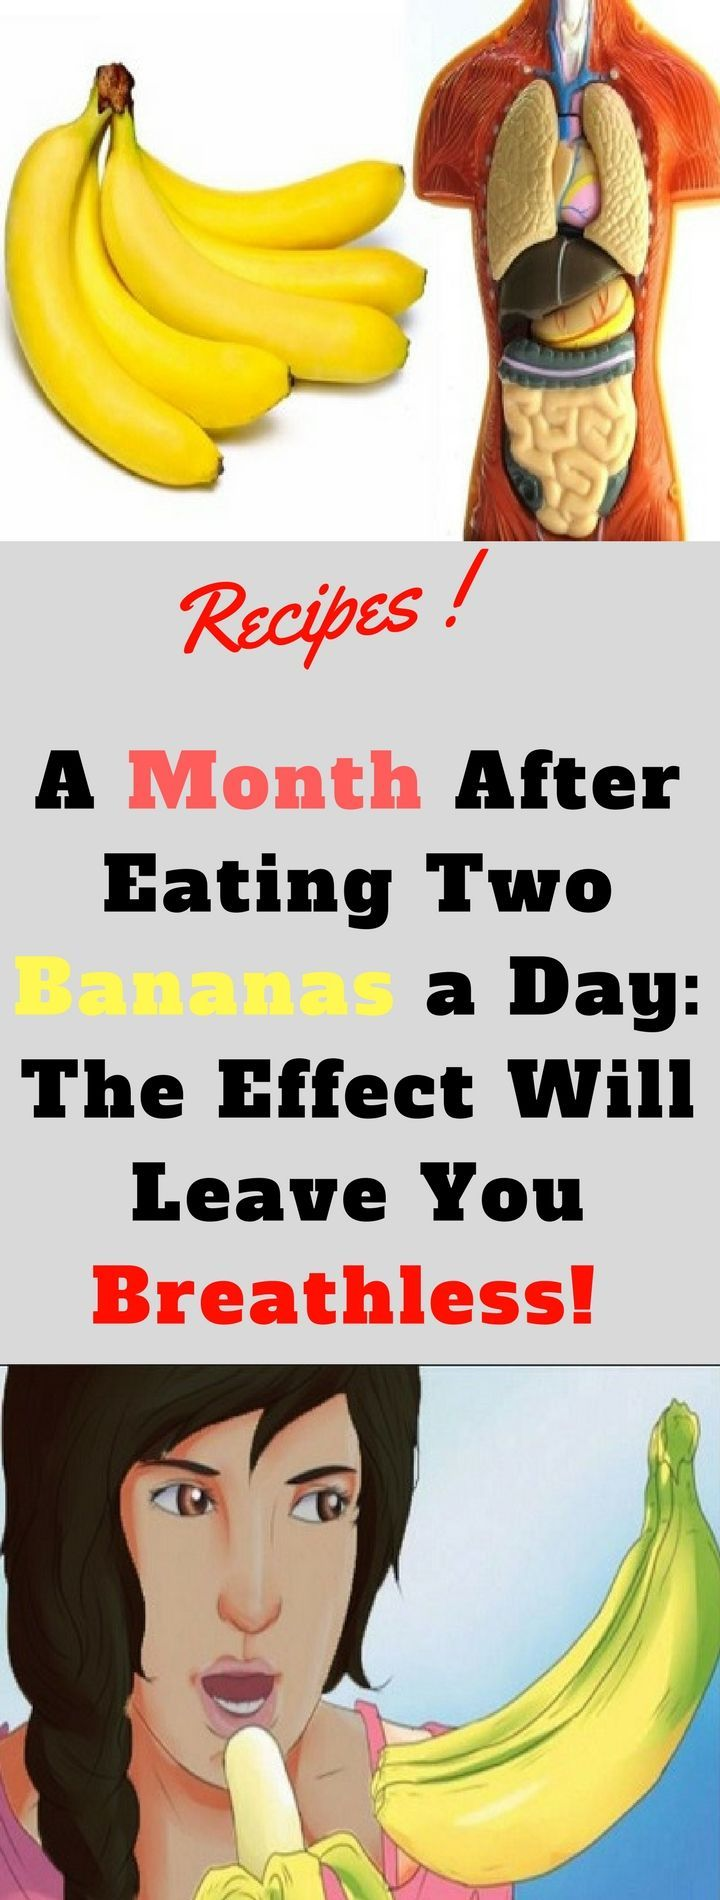 A Month After Eating Two Bananas a Day: The Effect Will Leave You Breathless!! -